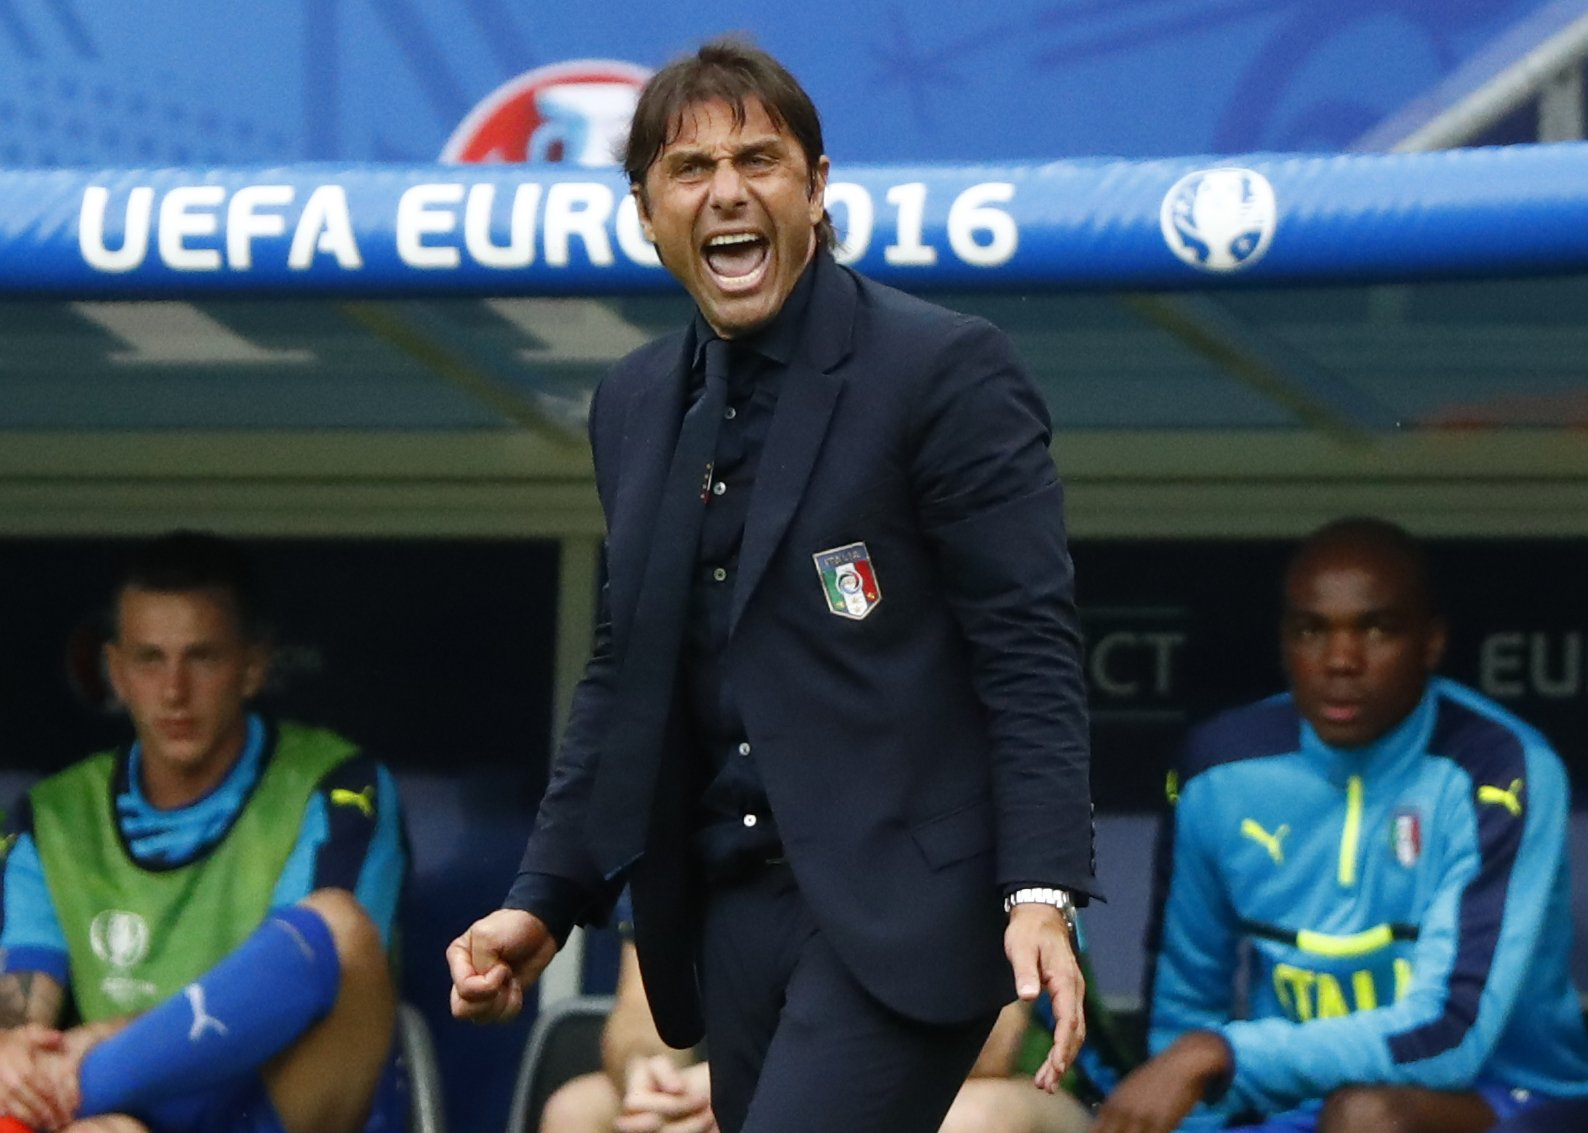 Italy manager Antonio Conte shows his passion with bizarre outburst against Spain